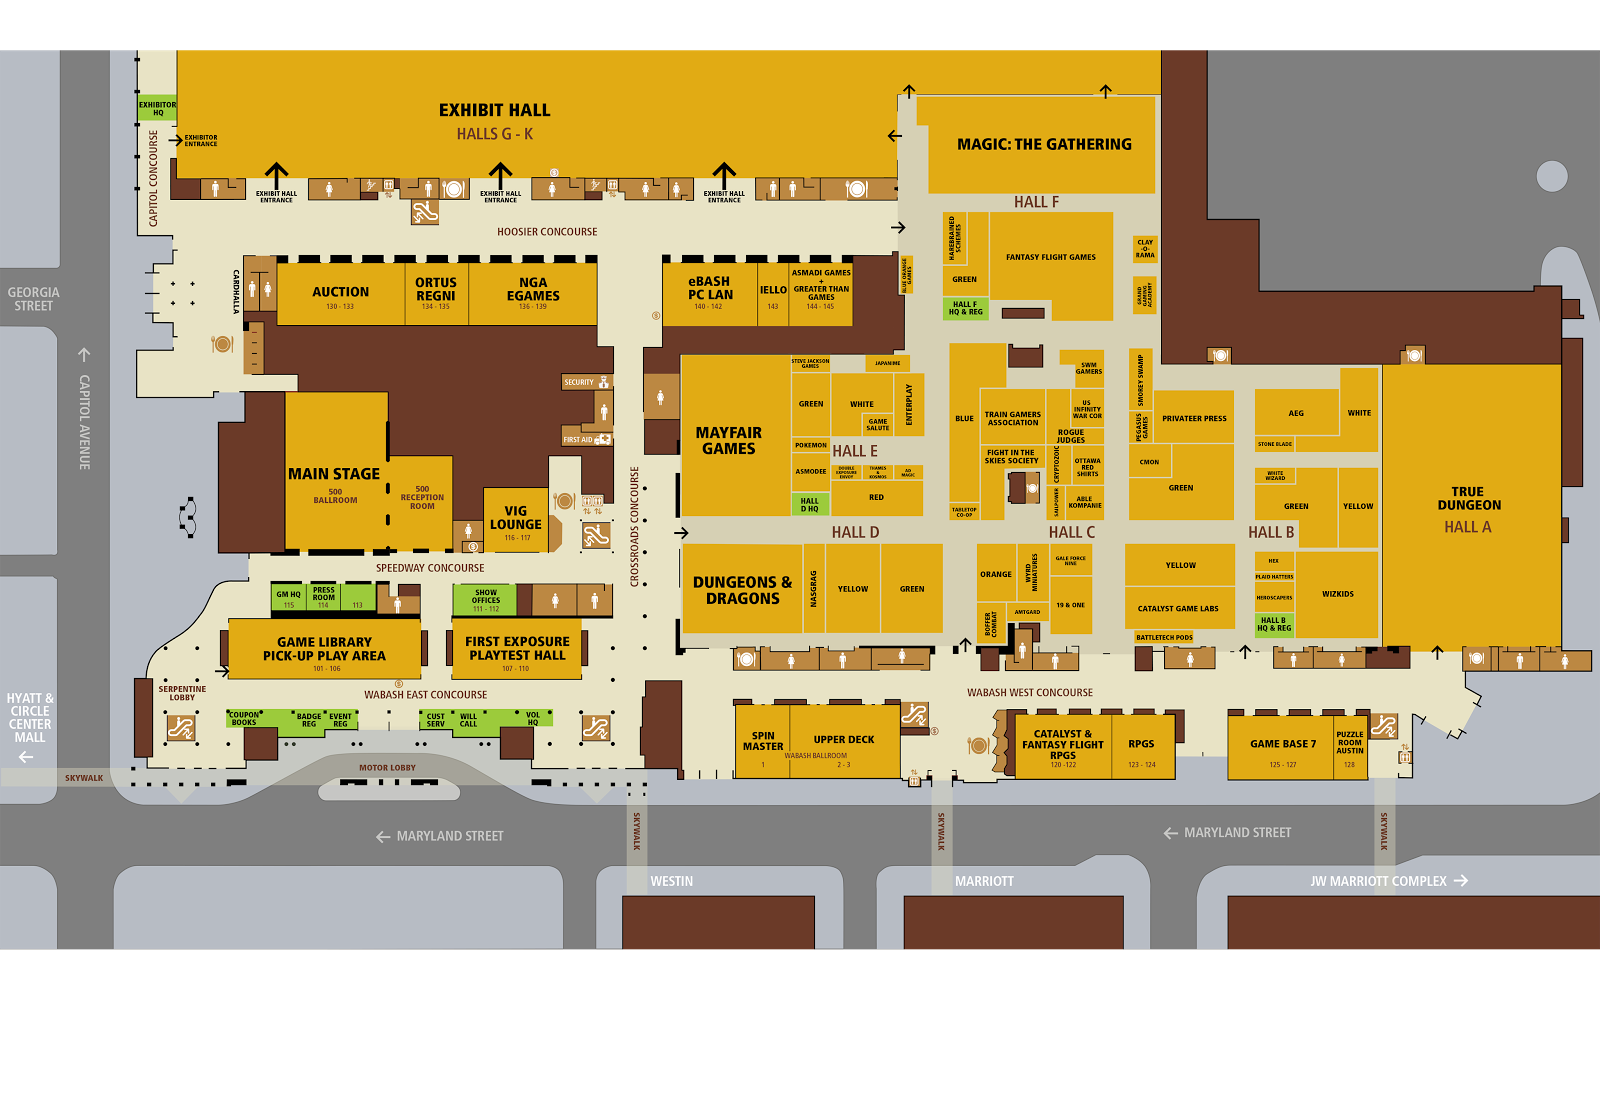 Dorkland!: I Hear You Like Maps, So I Put Maps In Your Maps on indianapolis airport area map, indianapolis real estate area map, parking downtown indianapolis indiana map, lucas oil stadium area map, long beach aquarium area map,